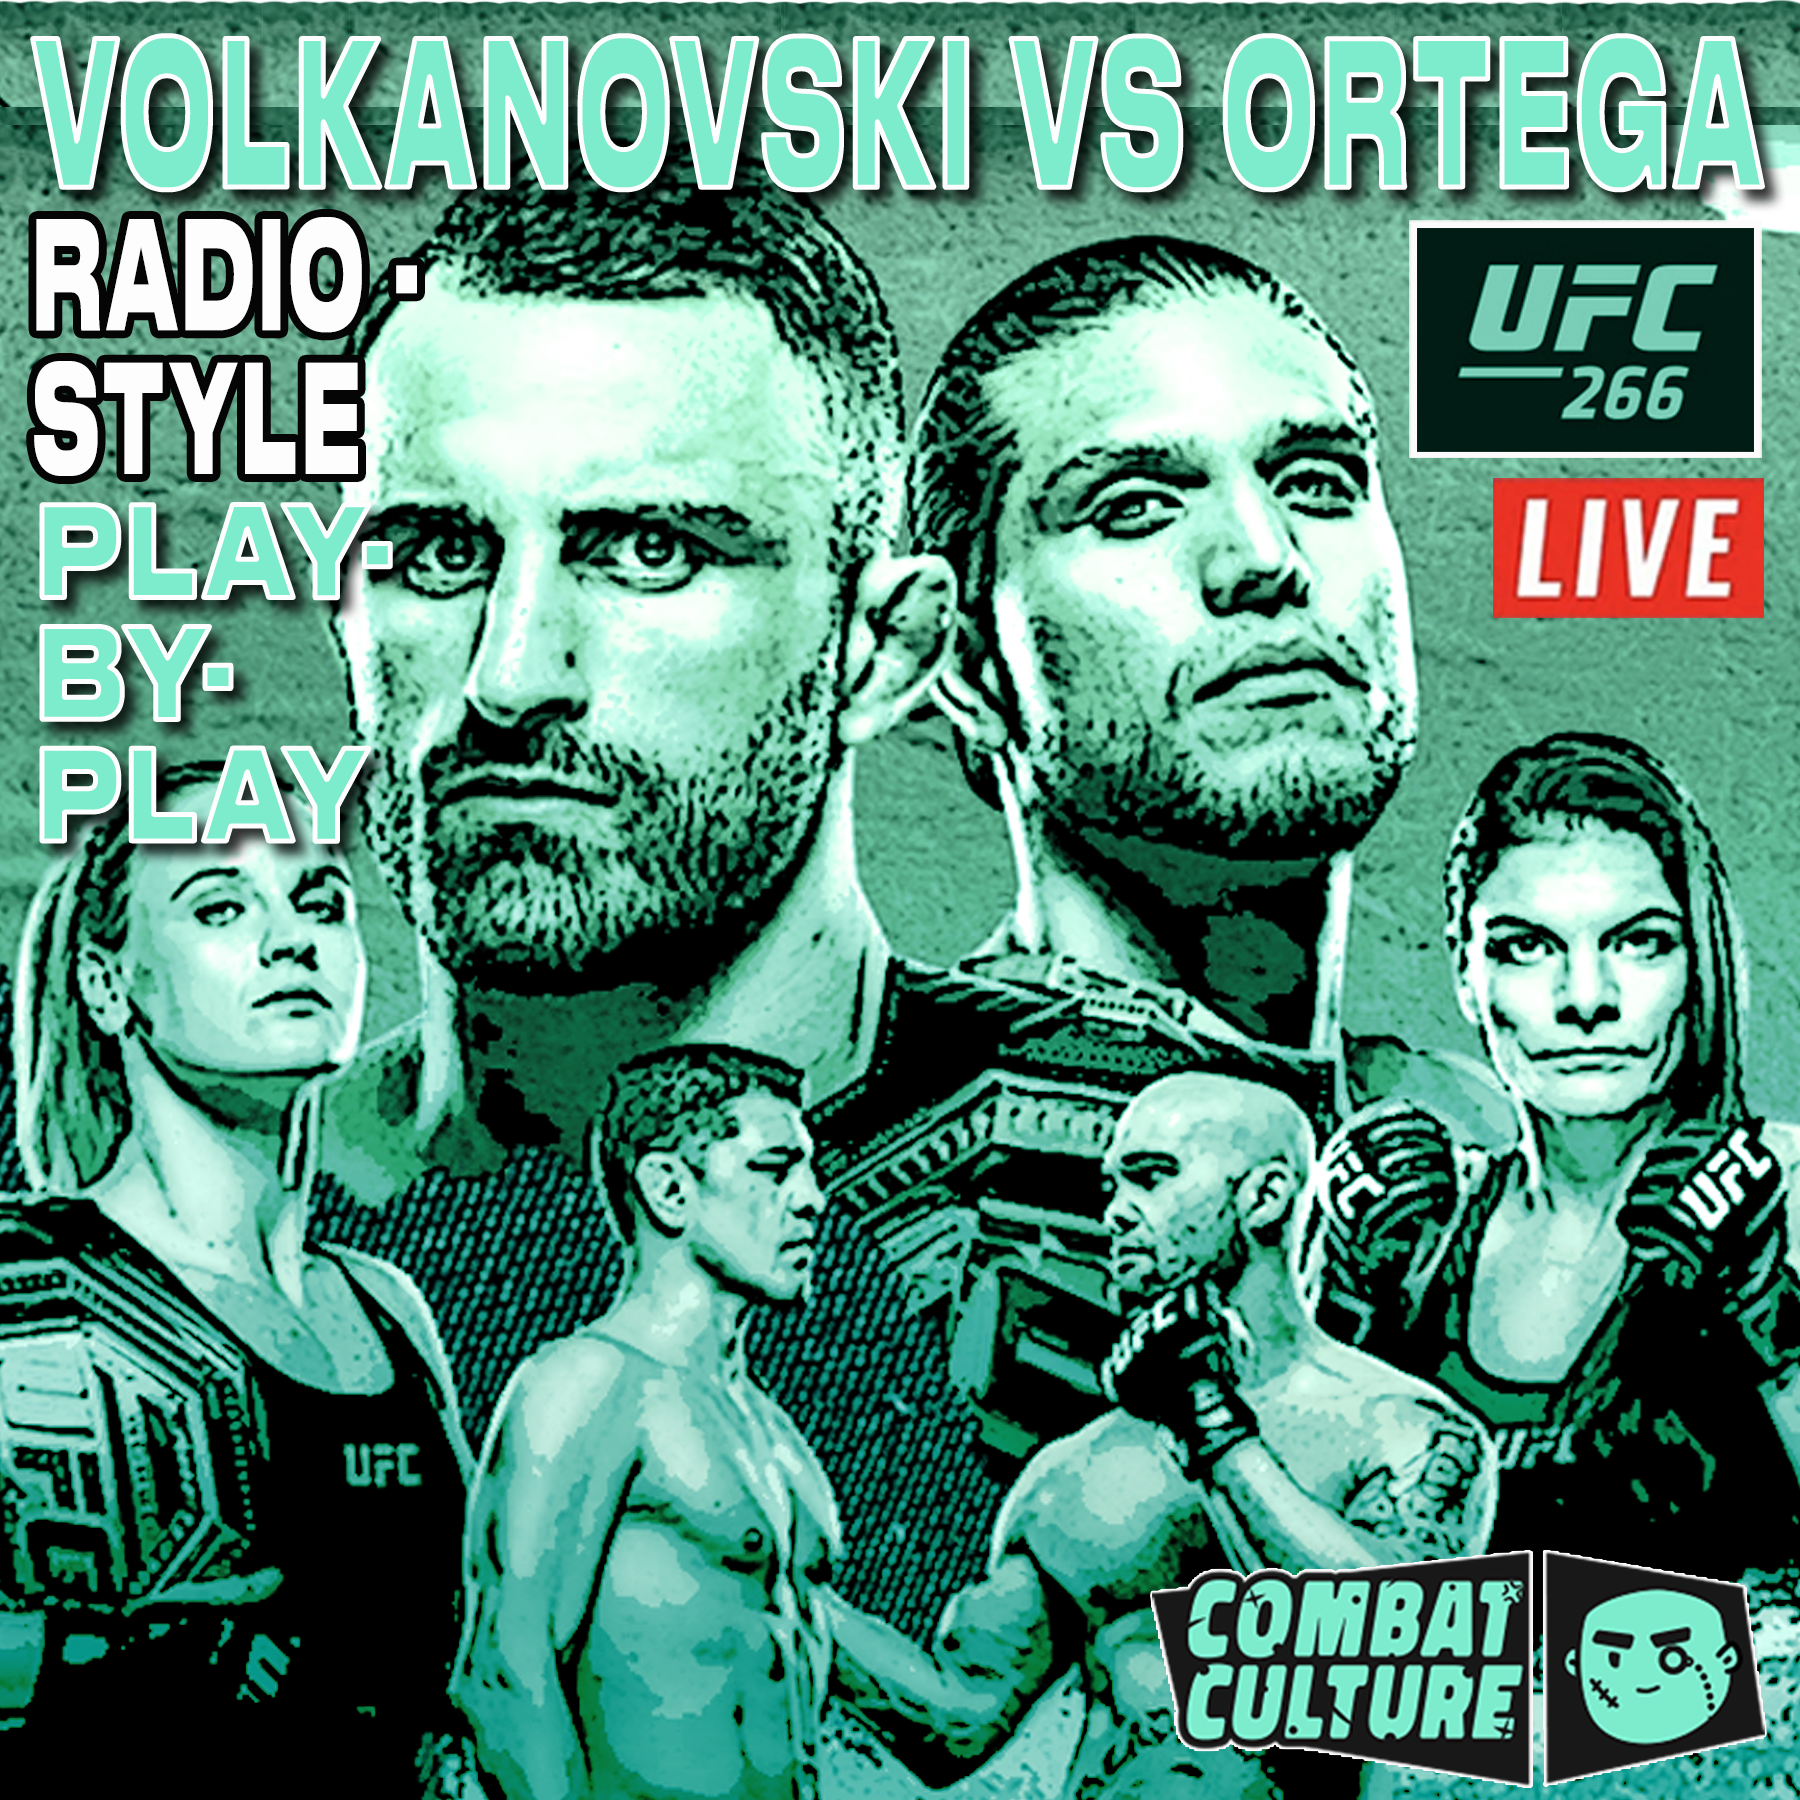 UFC 266, Radio-Style Commentary, UFC Play-by-Play, Matt Ryan, UFC 266 Radio-Style PBP Live Commentary, Volkanovski vs Ortega, UFC Podcast, MMA Podcast, Matt Ryan, Combat Culture